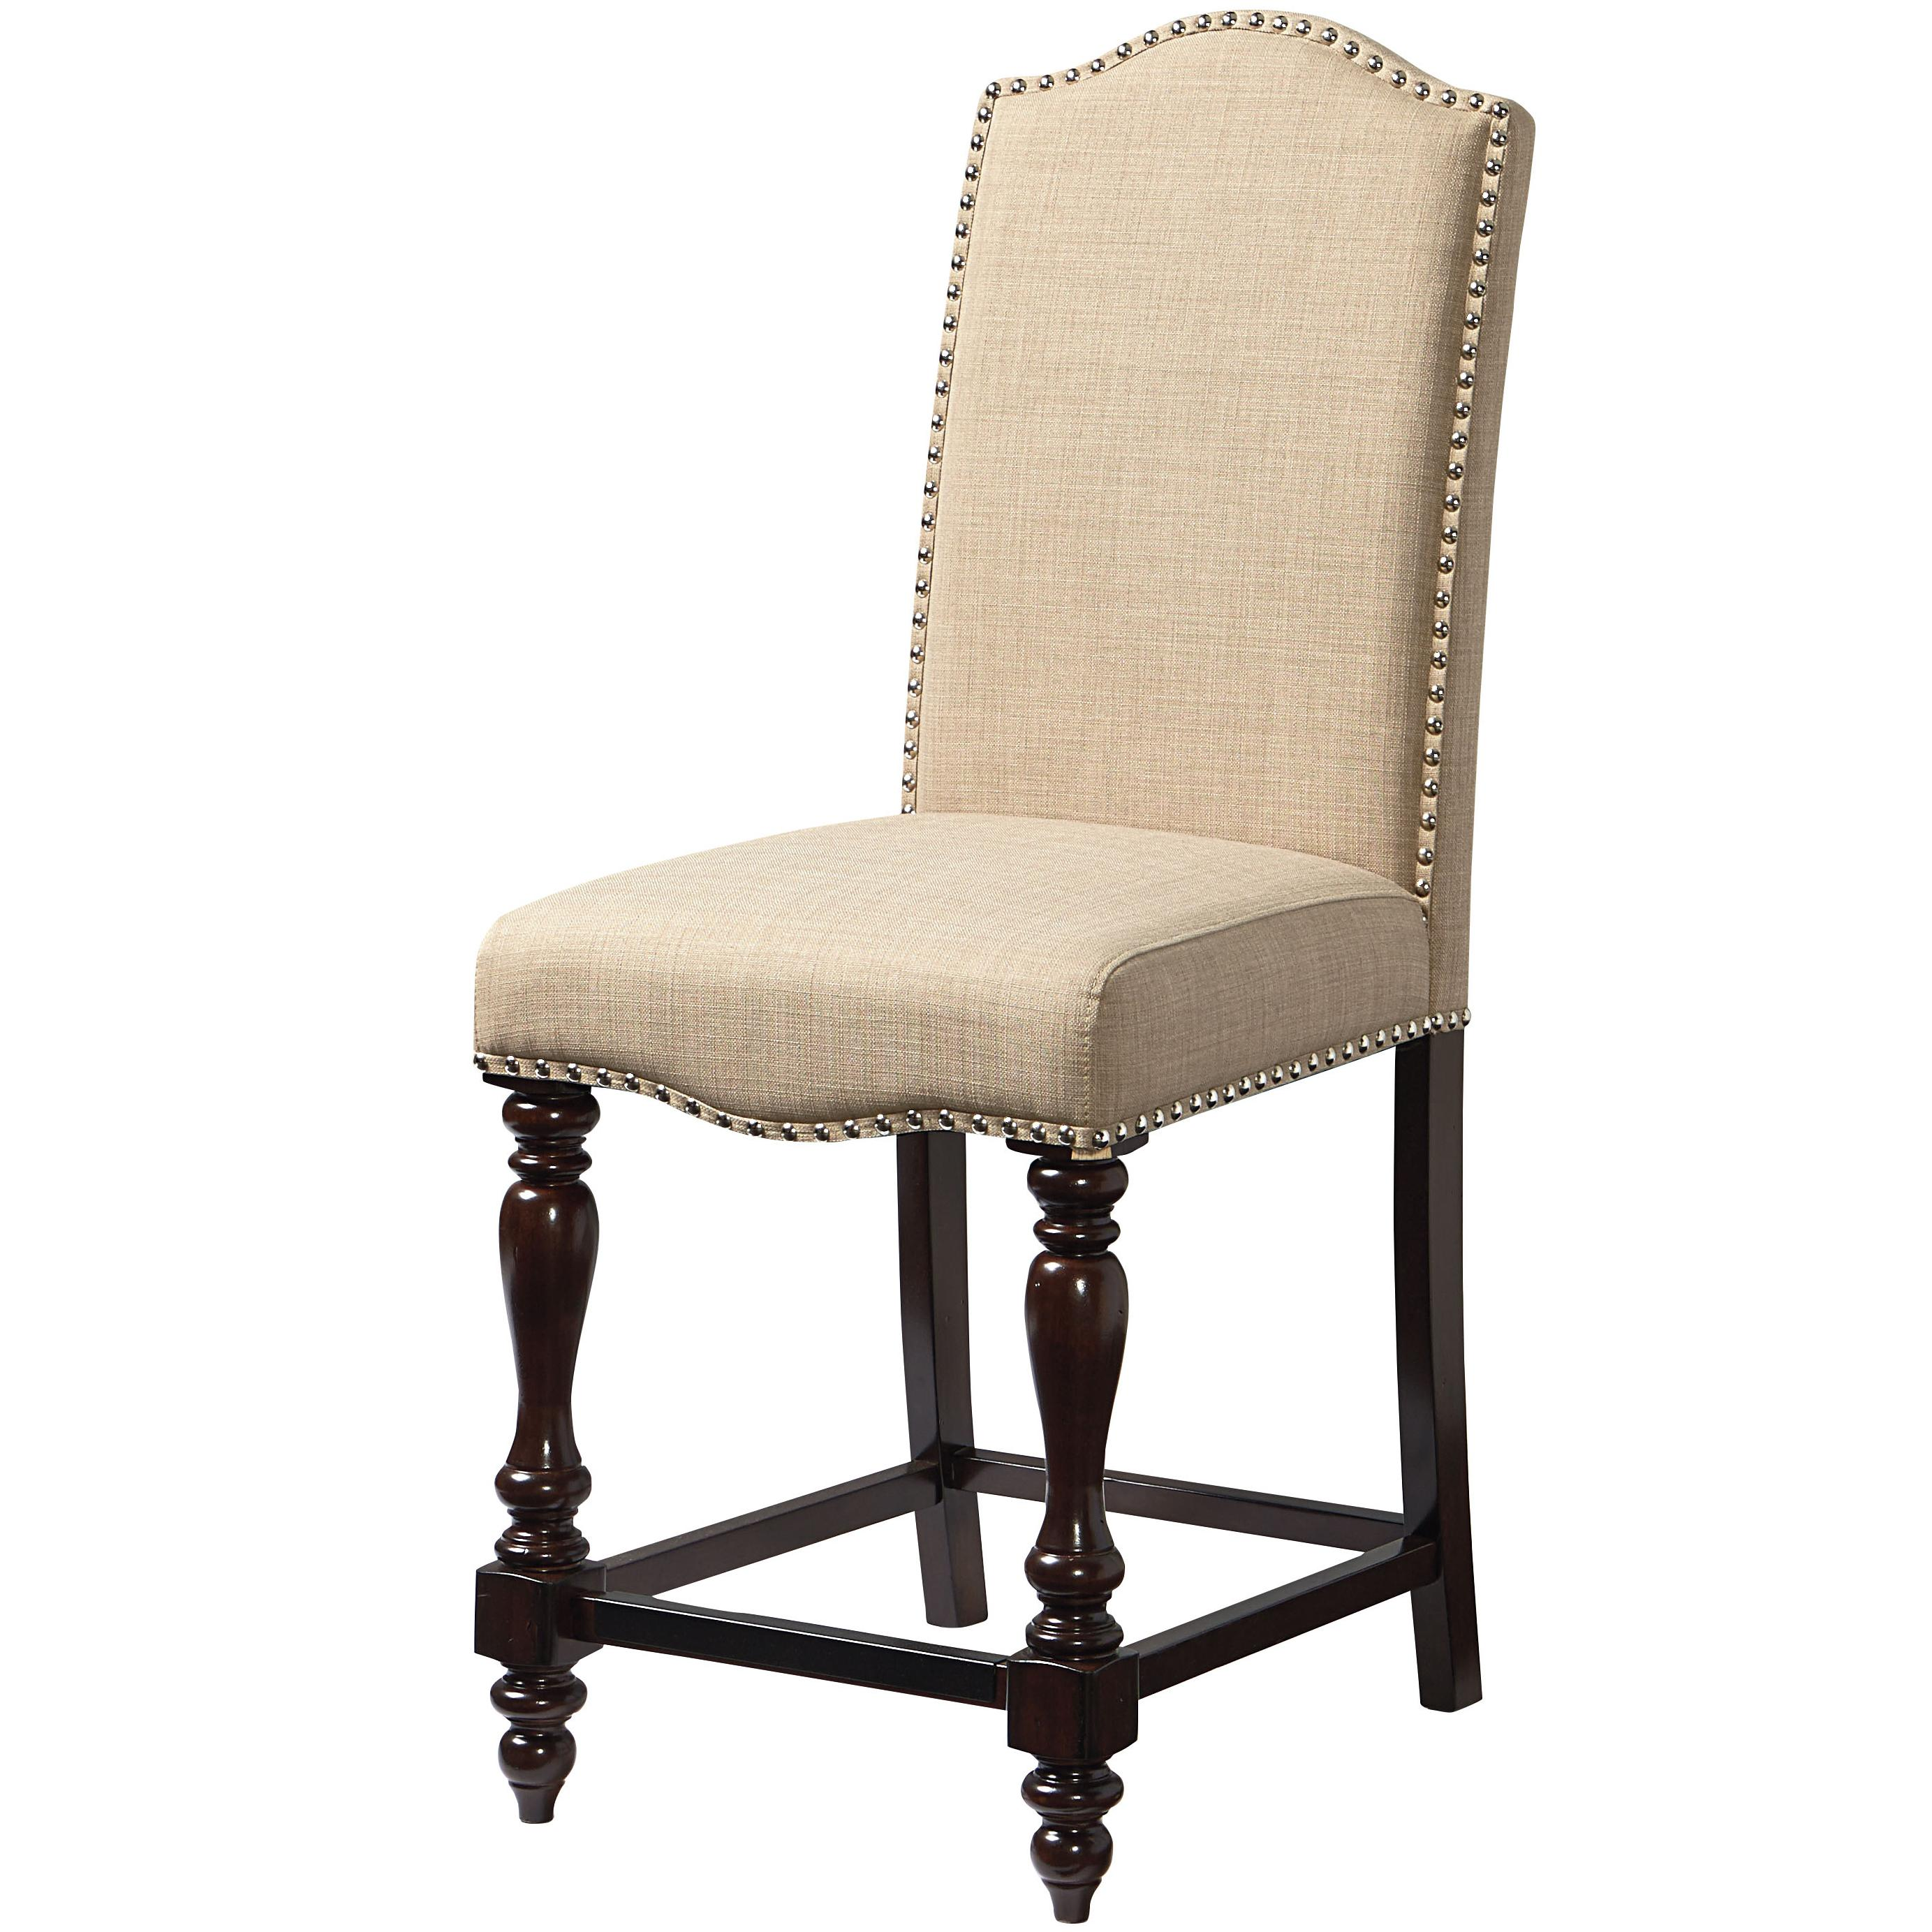 Upholstered Bar Chairs Standard Furniture Mcgregor 17737 Upholstered Counter